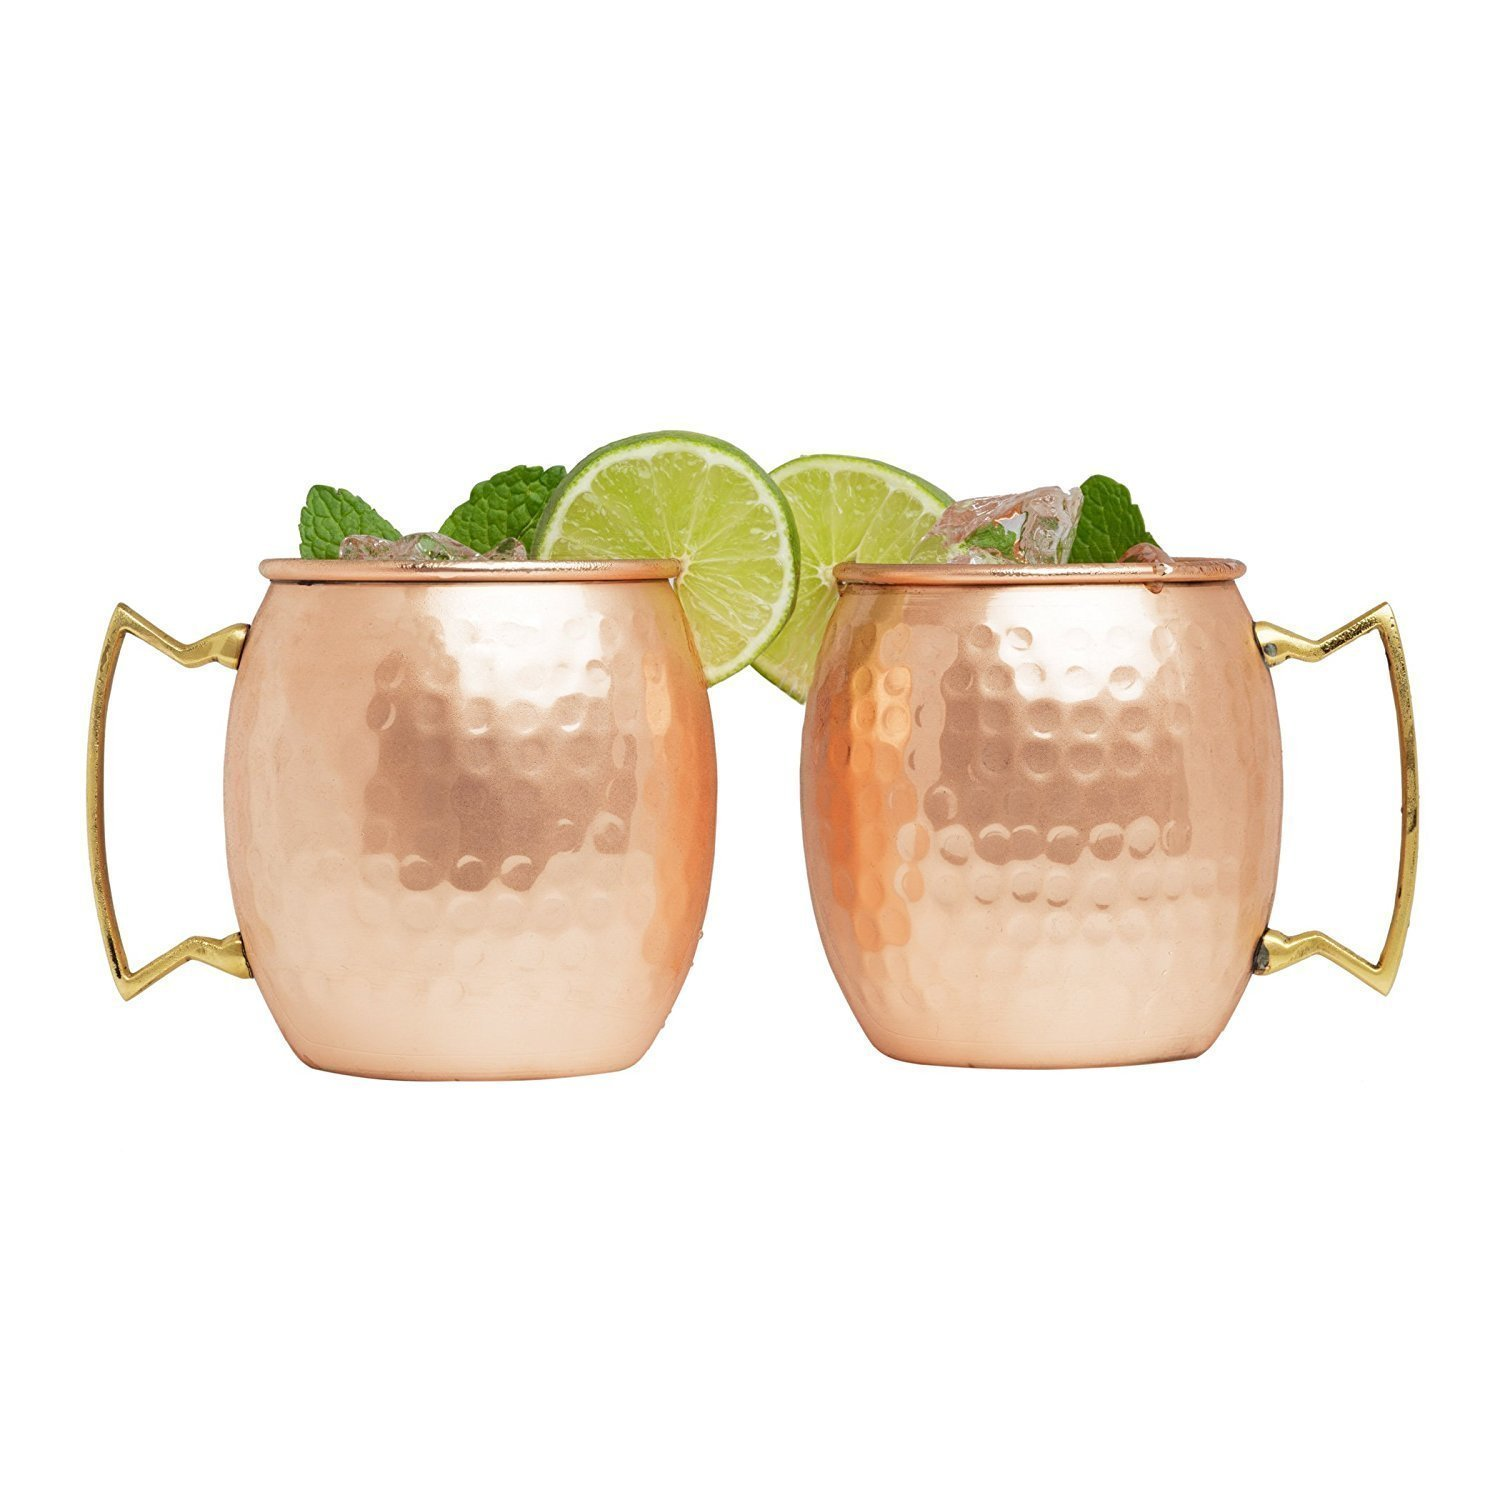 Set of 40 100% Pure Copper Moscow Mule Mugs By Advanced Mixology (16 oz each) with 40 Artisan Hand Crafted Wooden Coasters - Barrel With Brass Handle by Advanced Mixology (Image #3)